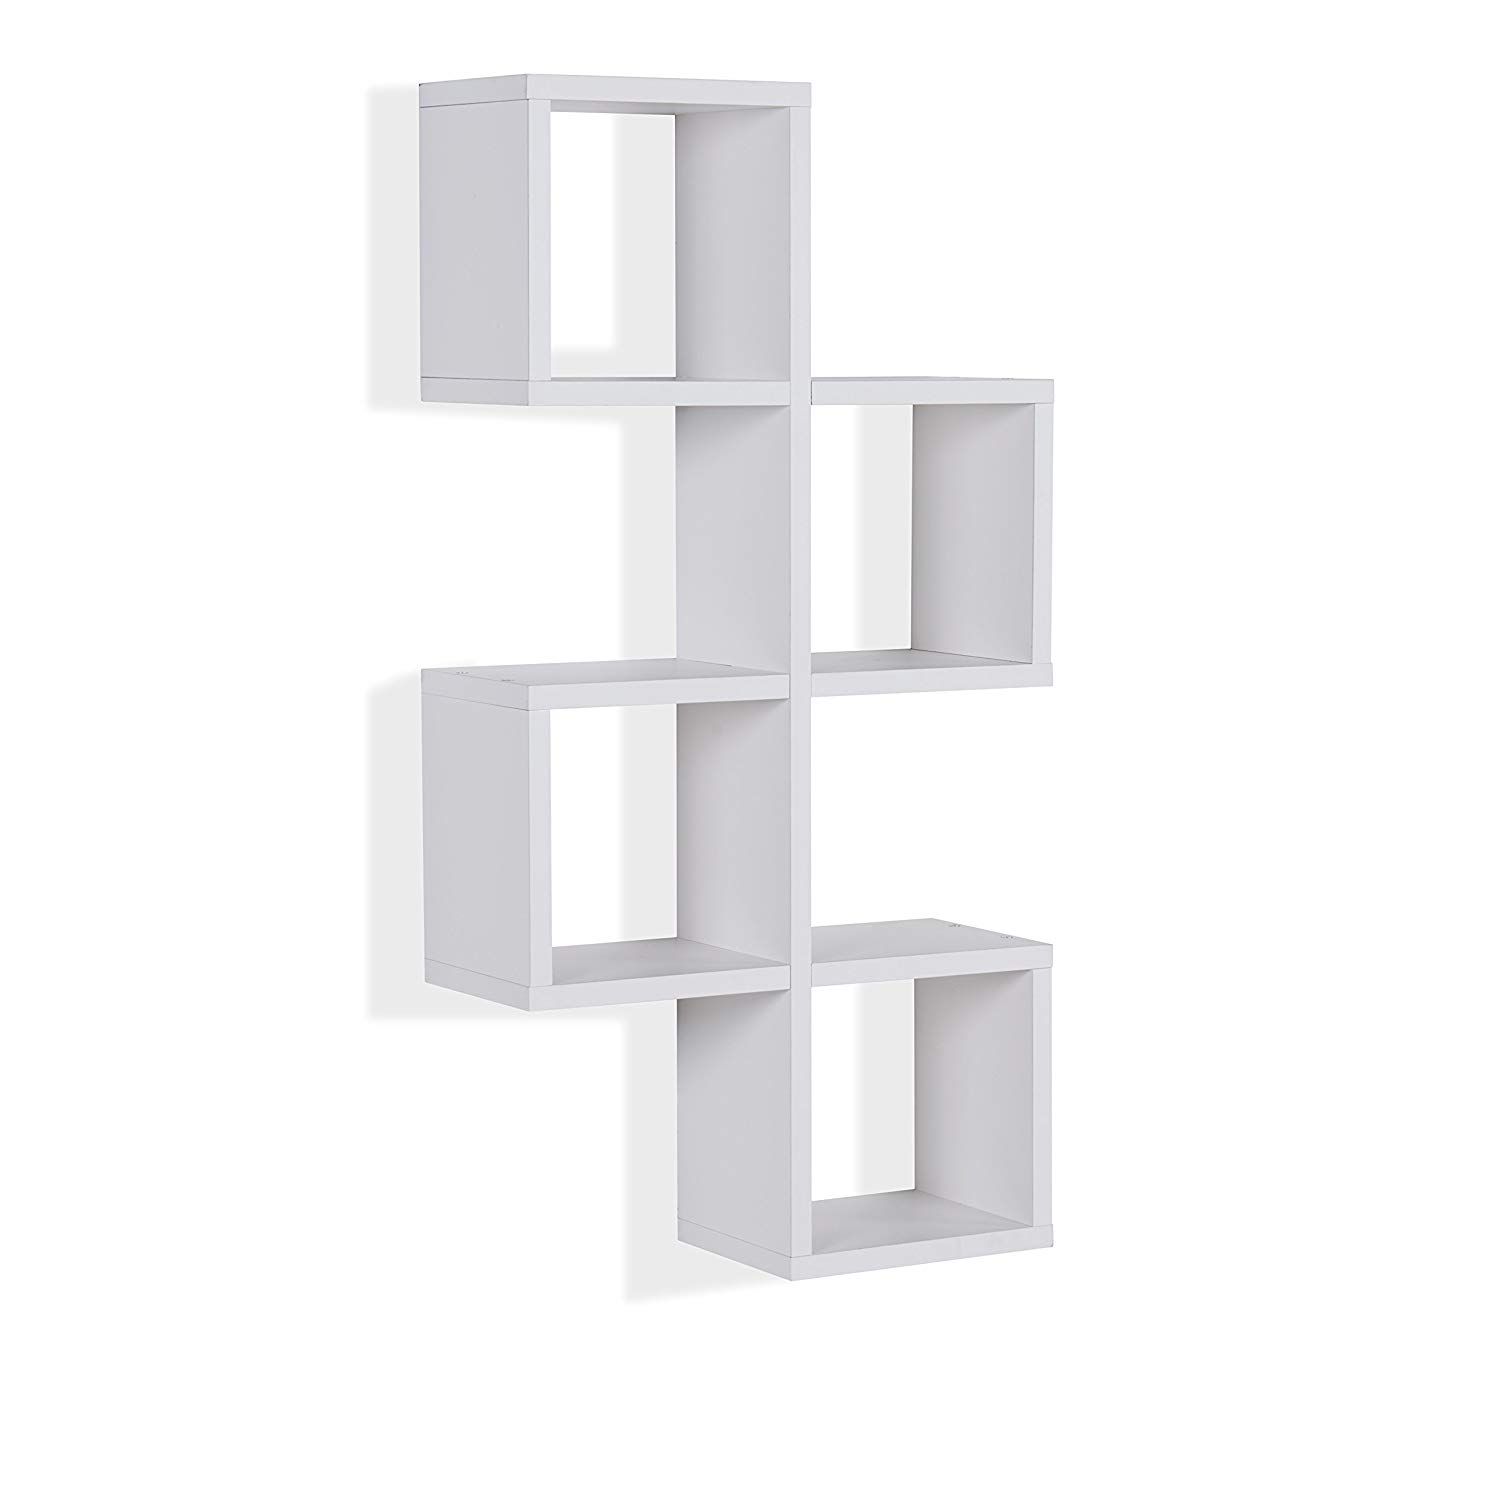 danya decorative floating wall mount cube shelf chessboard shelves white home kitchen coat holder component kallax bookshelf garage bookshelves french cleat system for tools